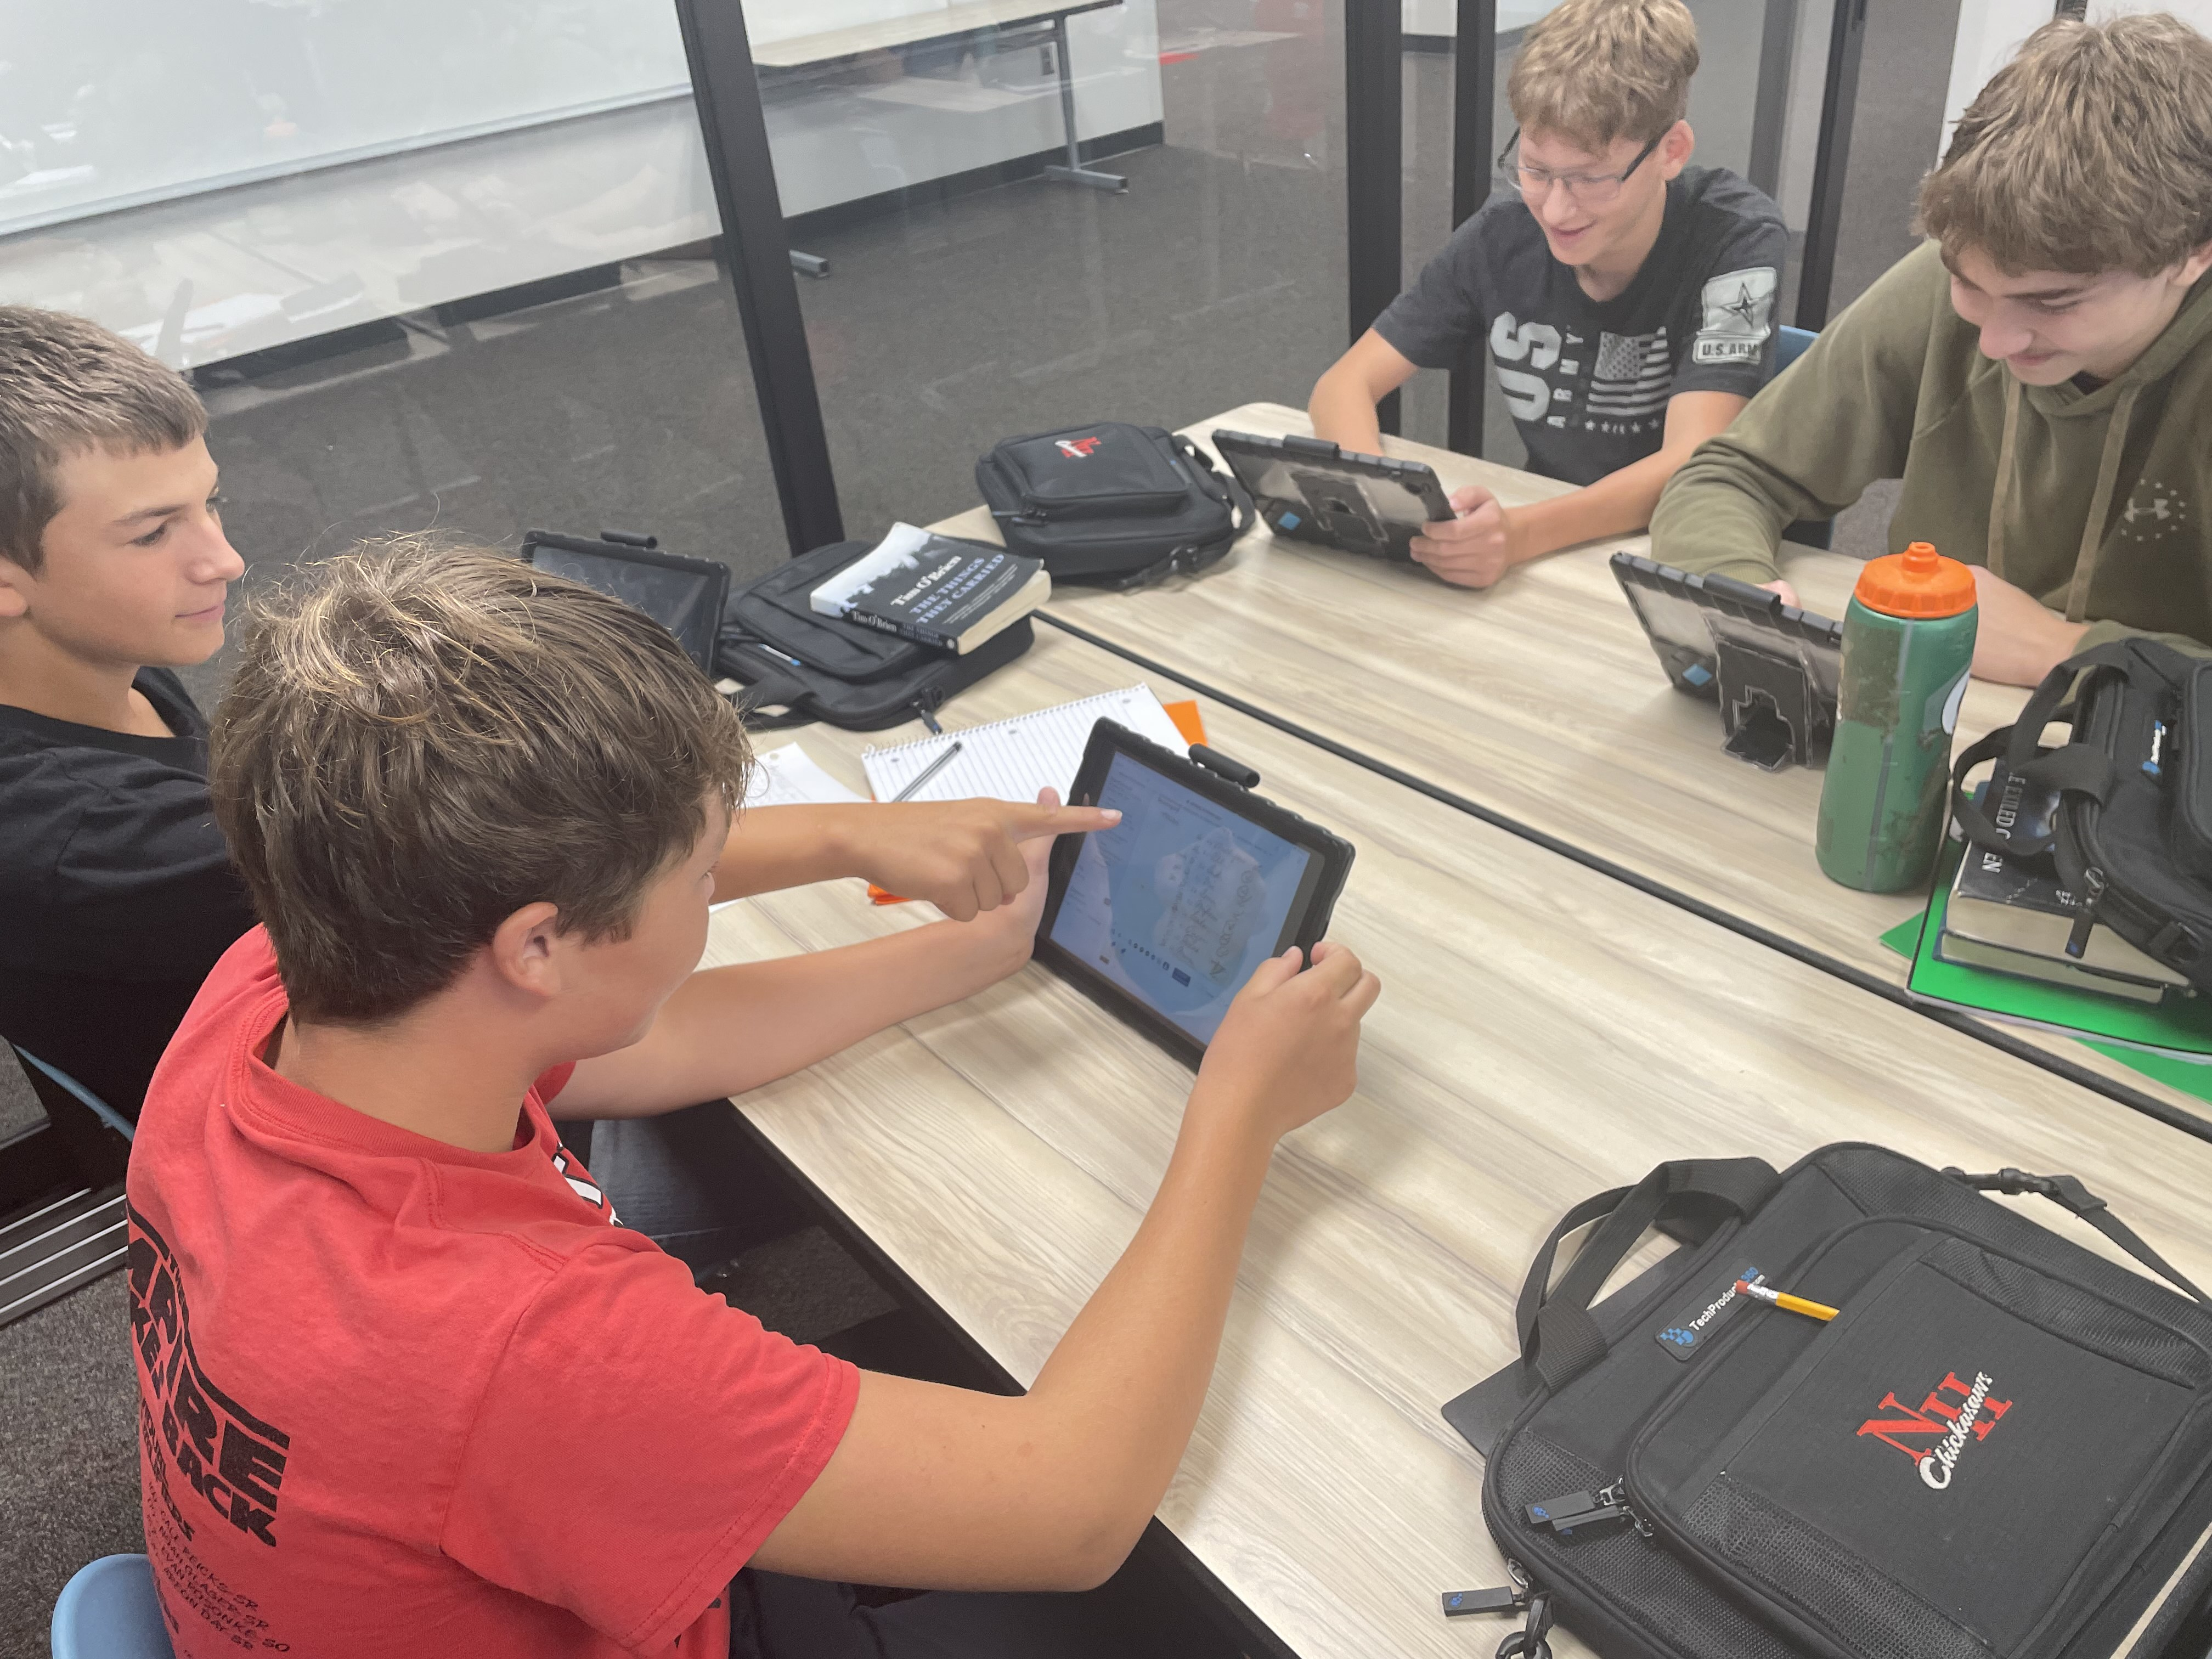 """8th graders in Mr. Rude's class are working with documents from the 1860 election. They are transcribing a July, 1860 prediction of that fall's election, made by J.K. Duncan and GT. Beauregard. This allows the students to compare the perceived """"pulse of the country"""" in July, 1860 to the actual results in November."""